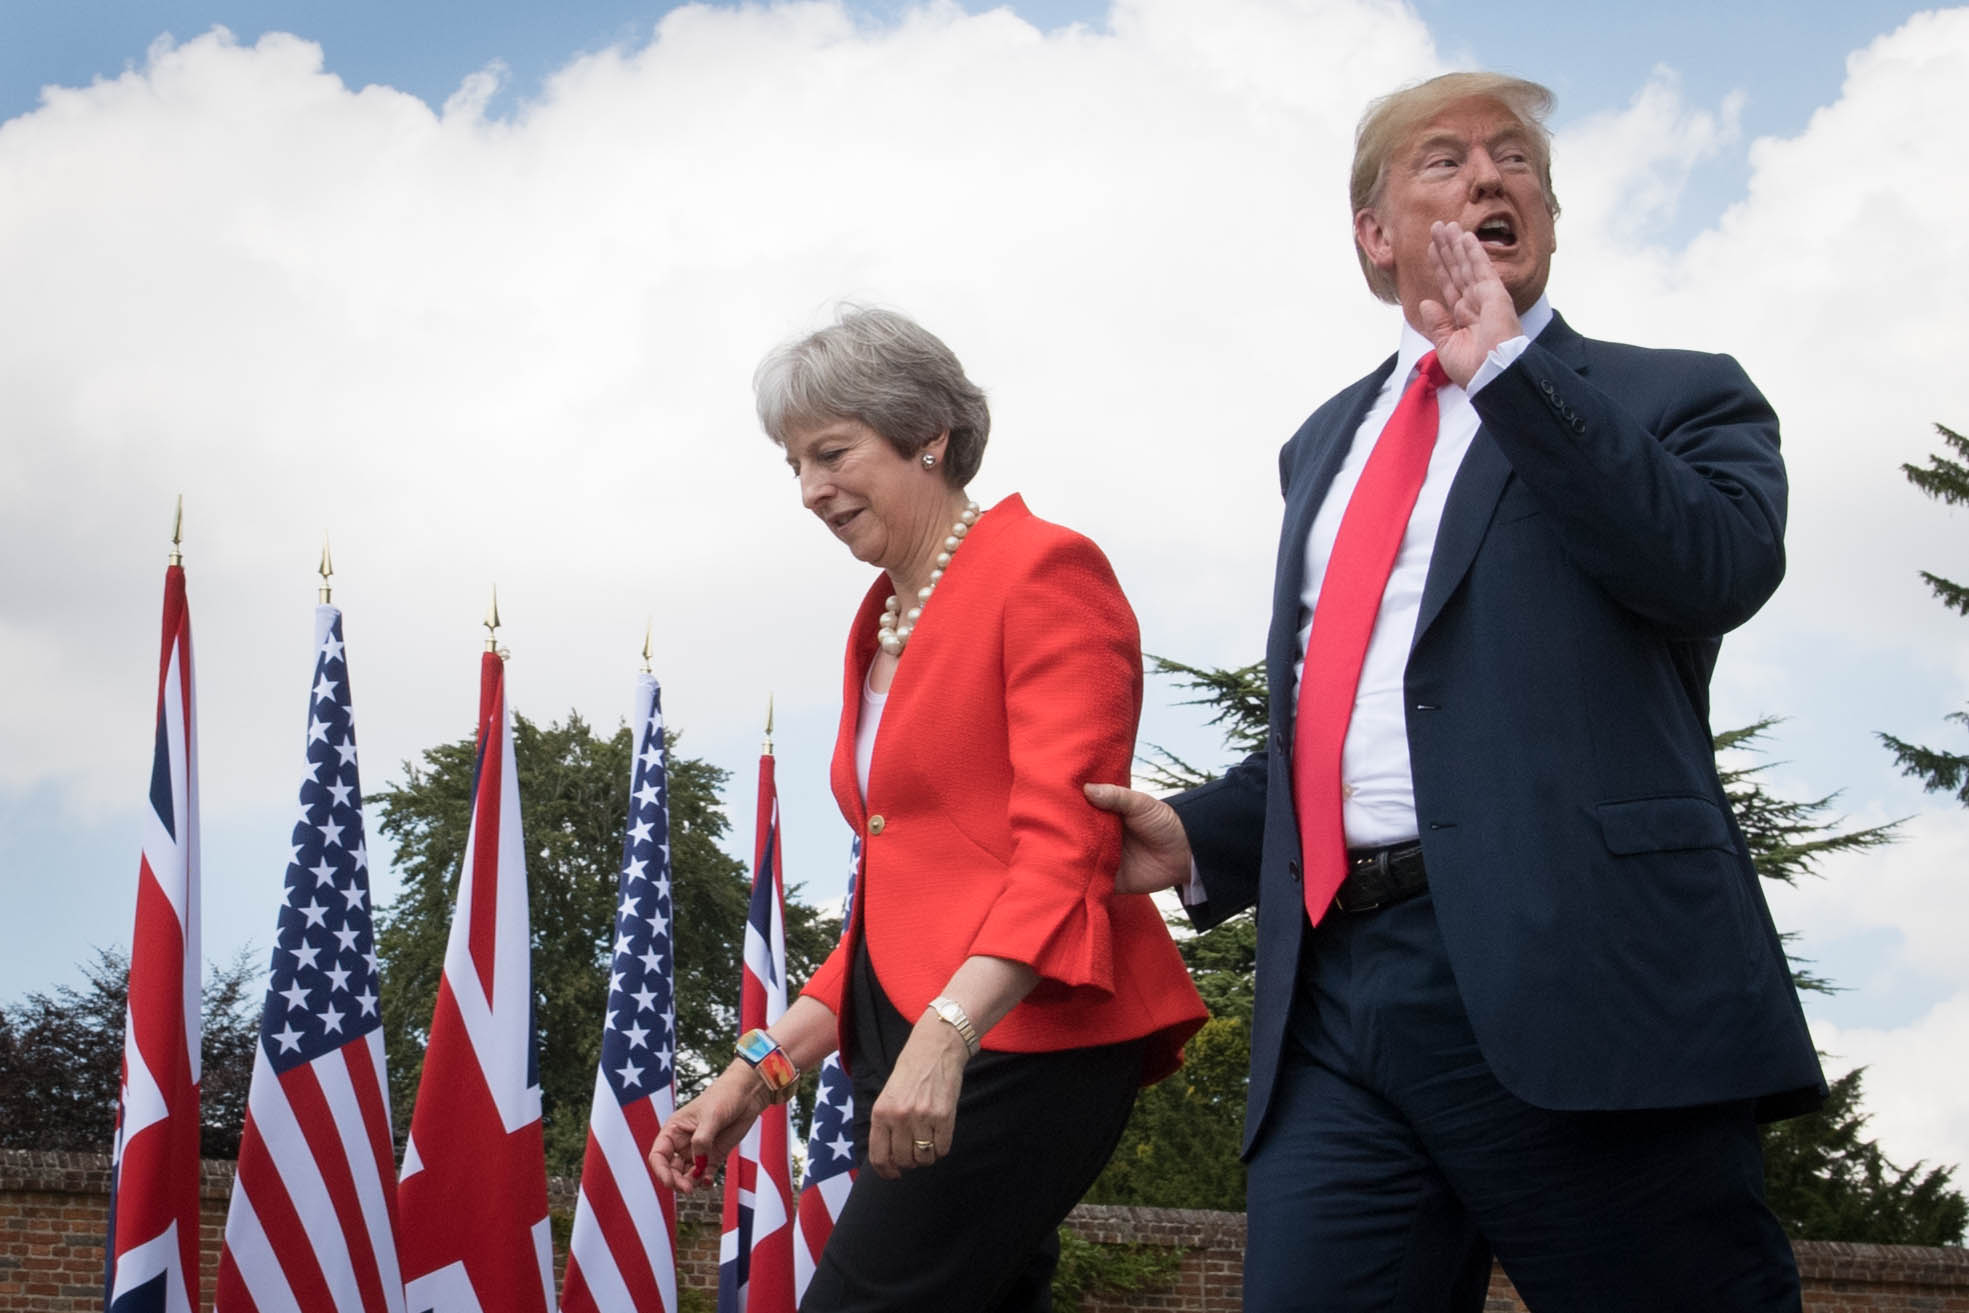 Donald Trump blasts May's Brexit strategy on UK visit